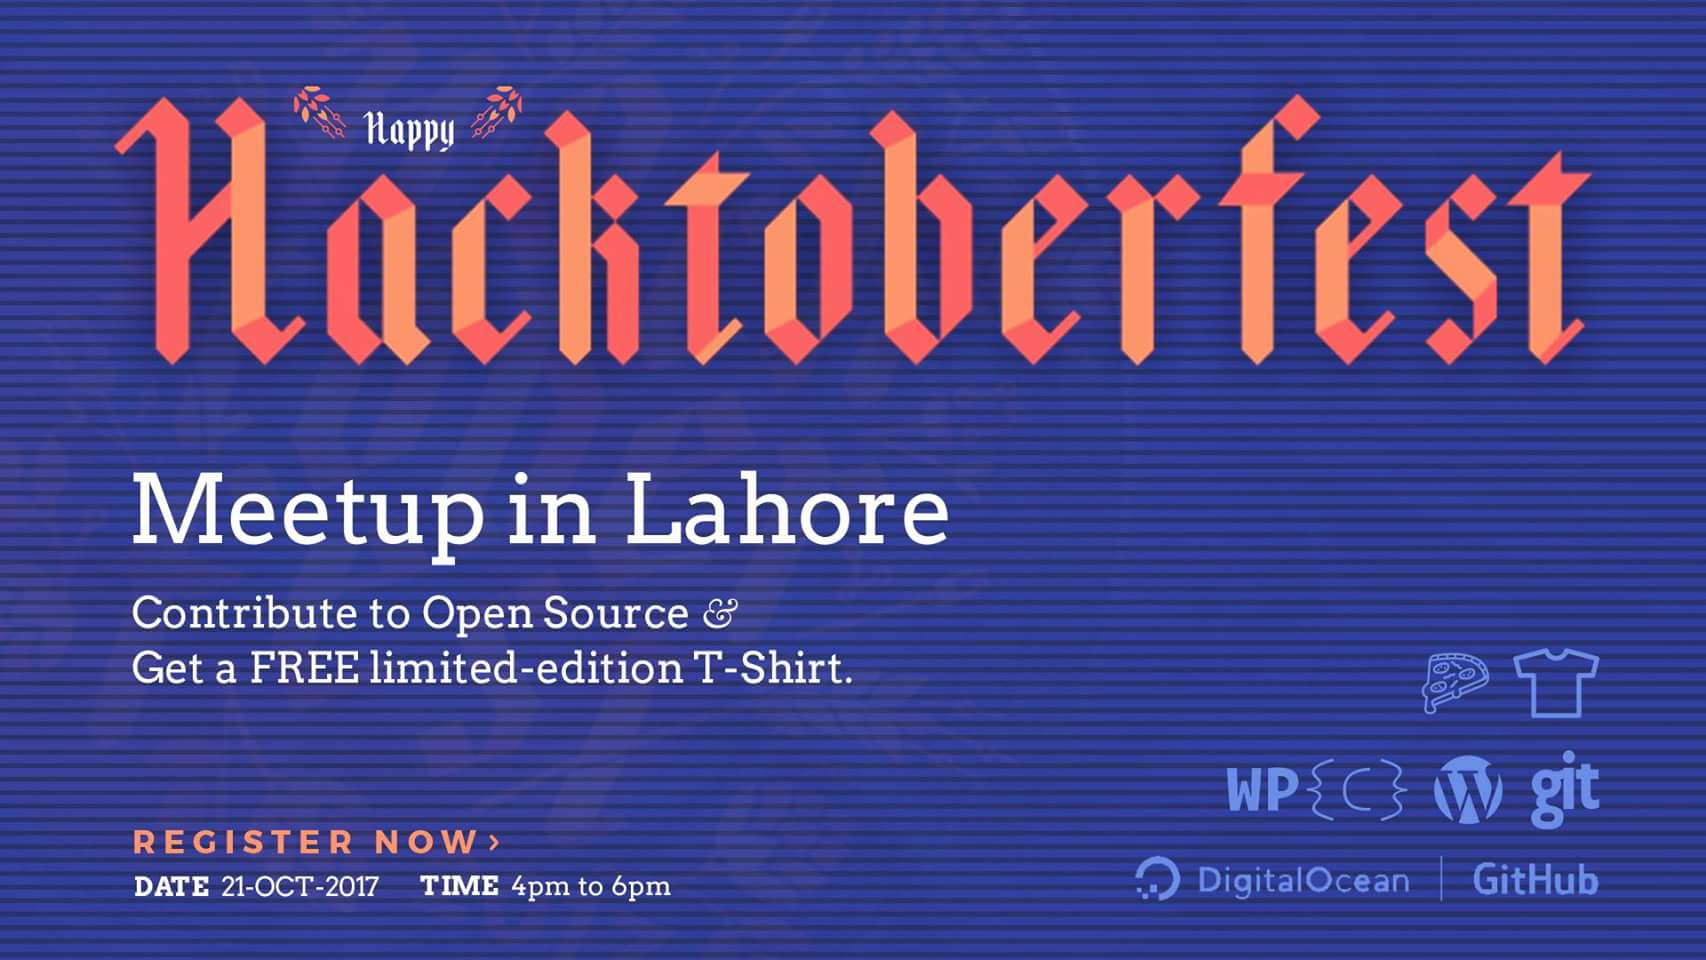 The WPCouple's #Hacktoberfest Open Source with WordPress Meetup 1 Community